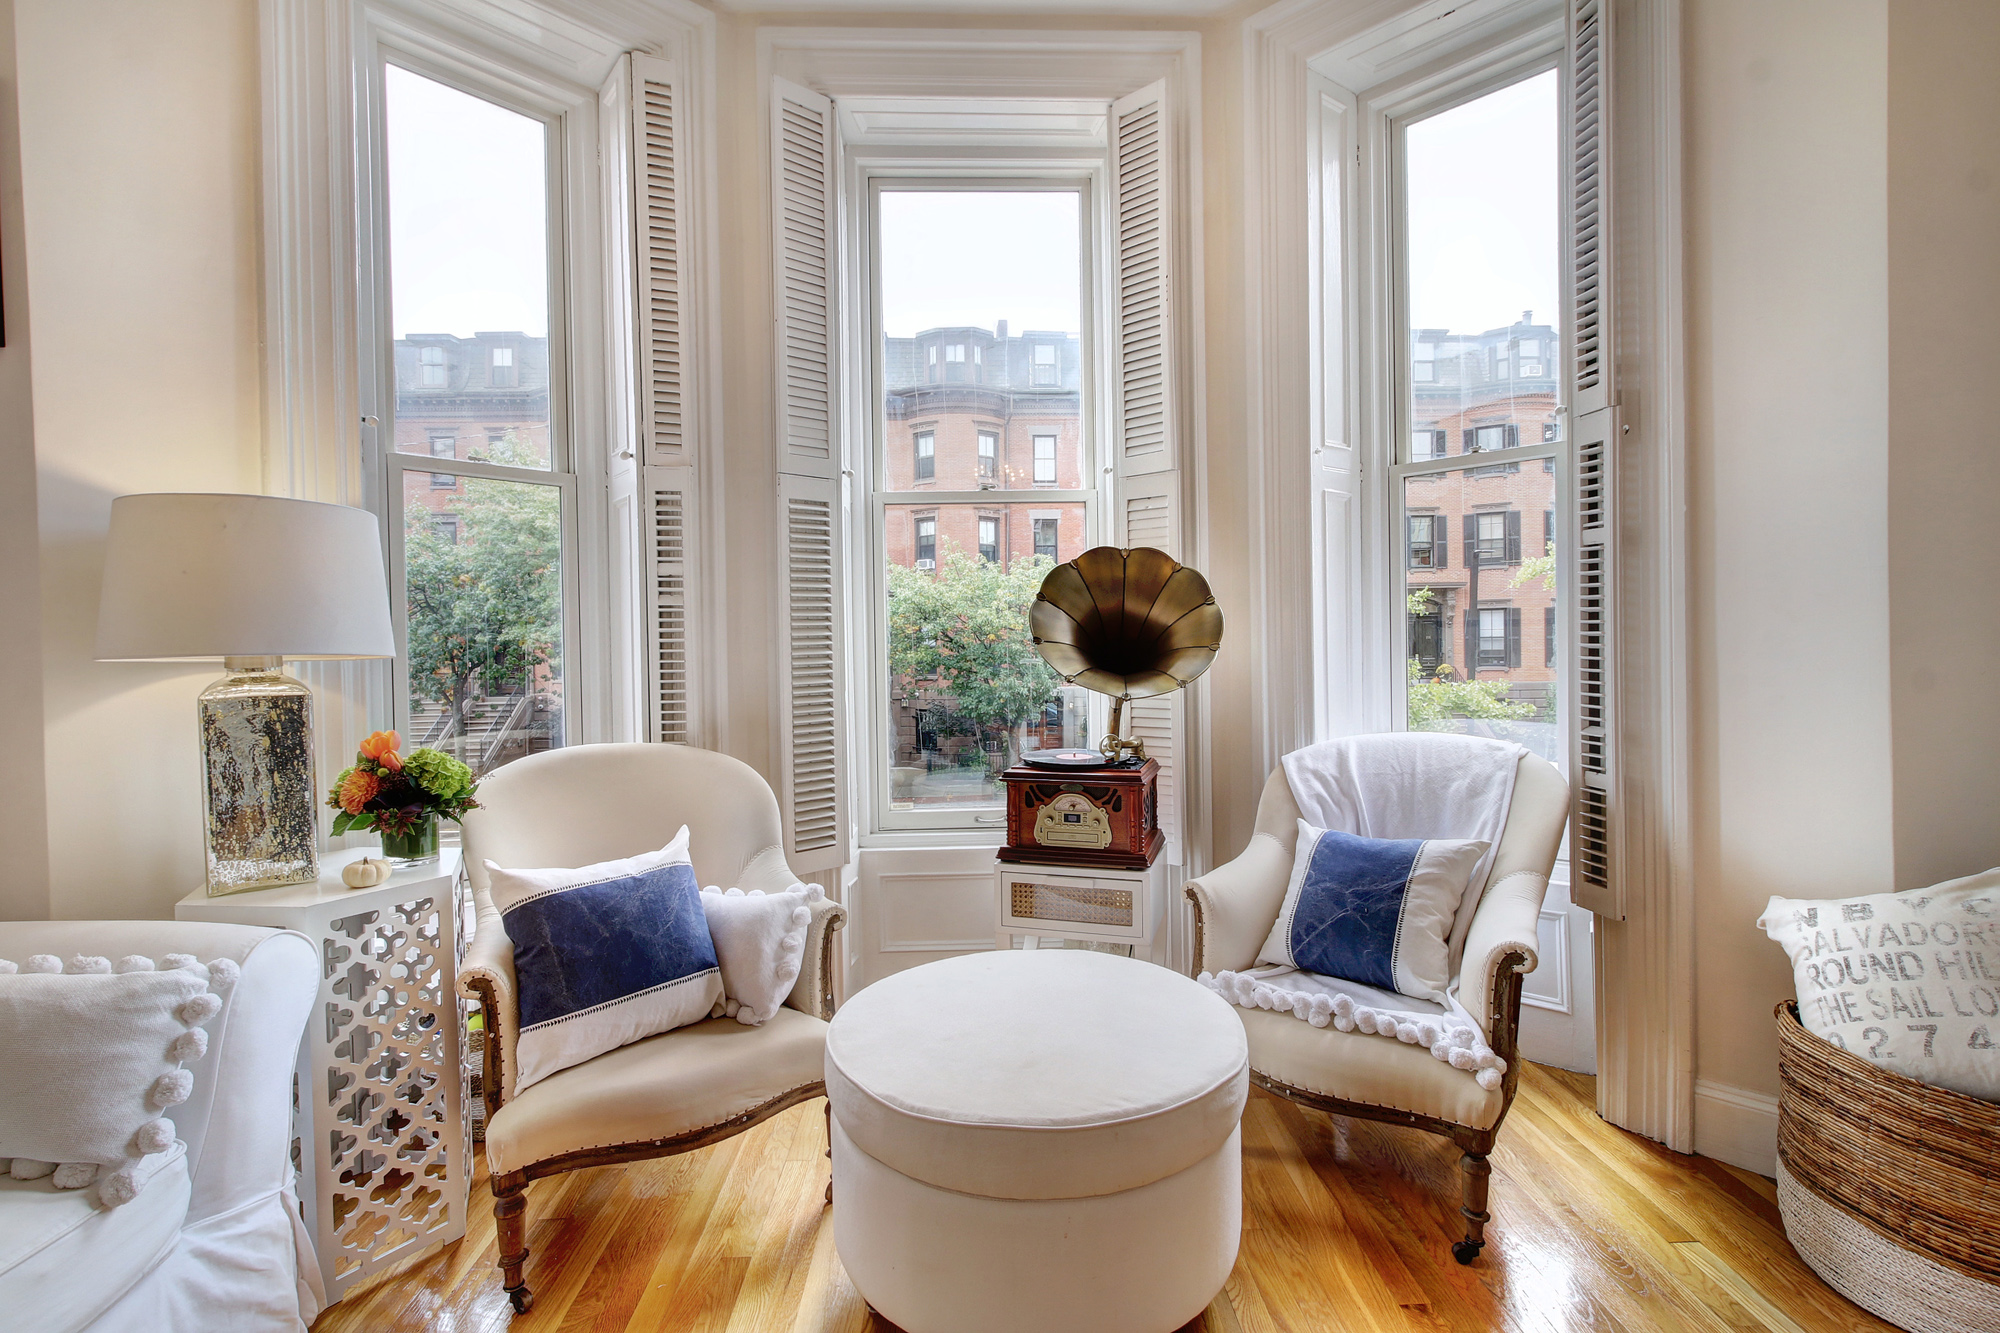 living room boston 4 chairs in instead of sofa home showcase south end condo is decked out for november 1 2018 ma bowfronted livingroom at the 501 columbus ave 3 courtesy realtor